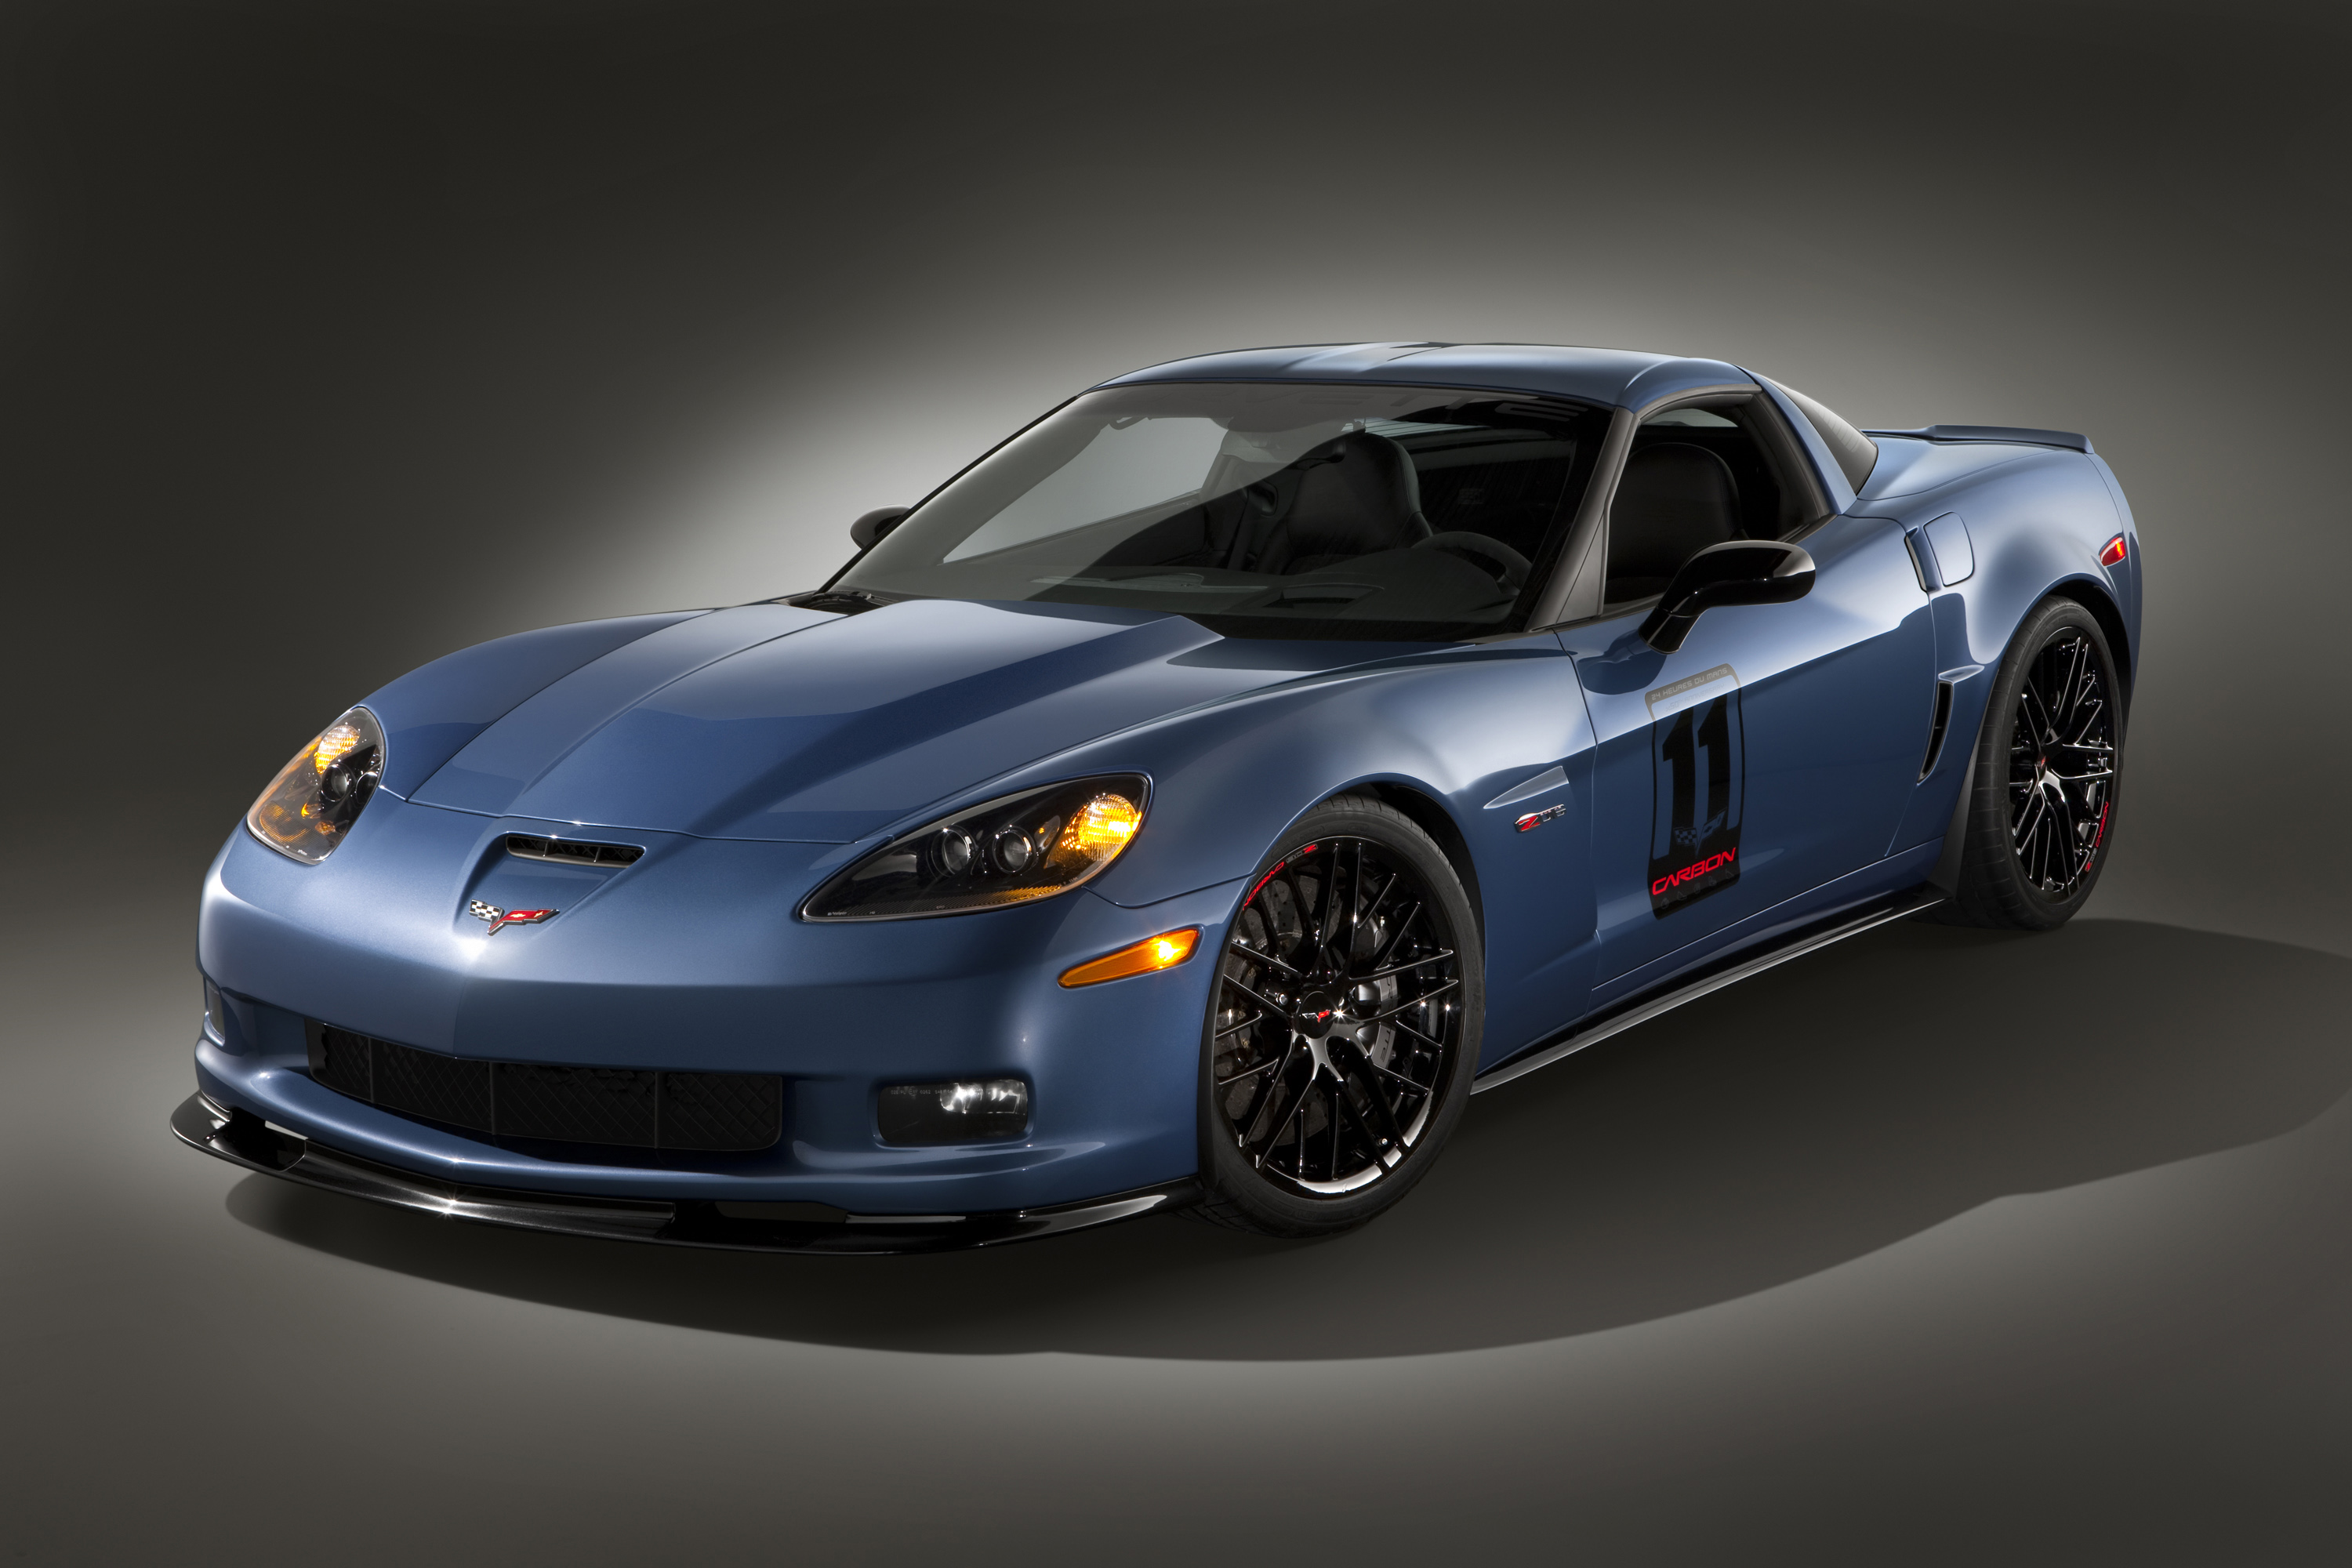 2011 Chevrolet Corvette Z06 Carbon Limited Edition Wallpaper Backgrounds